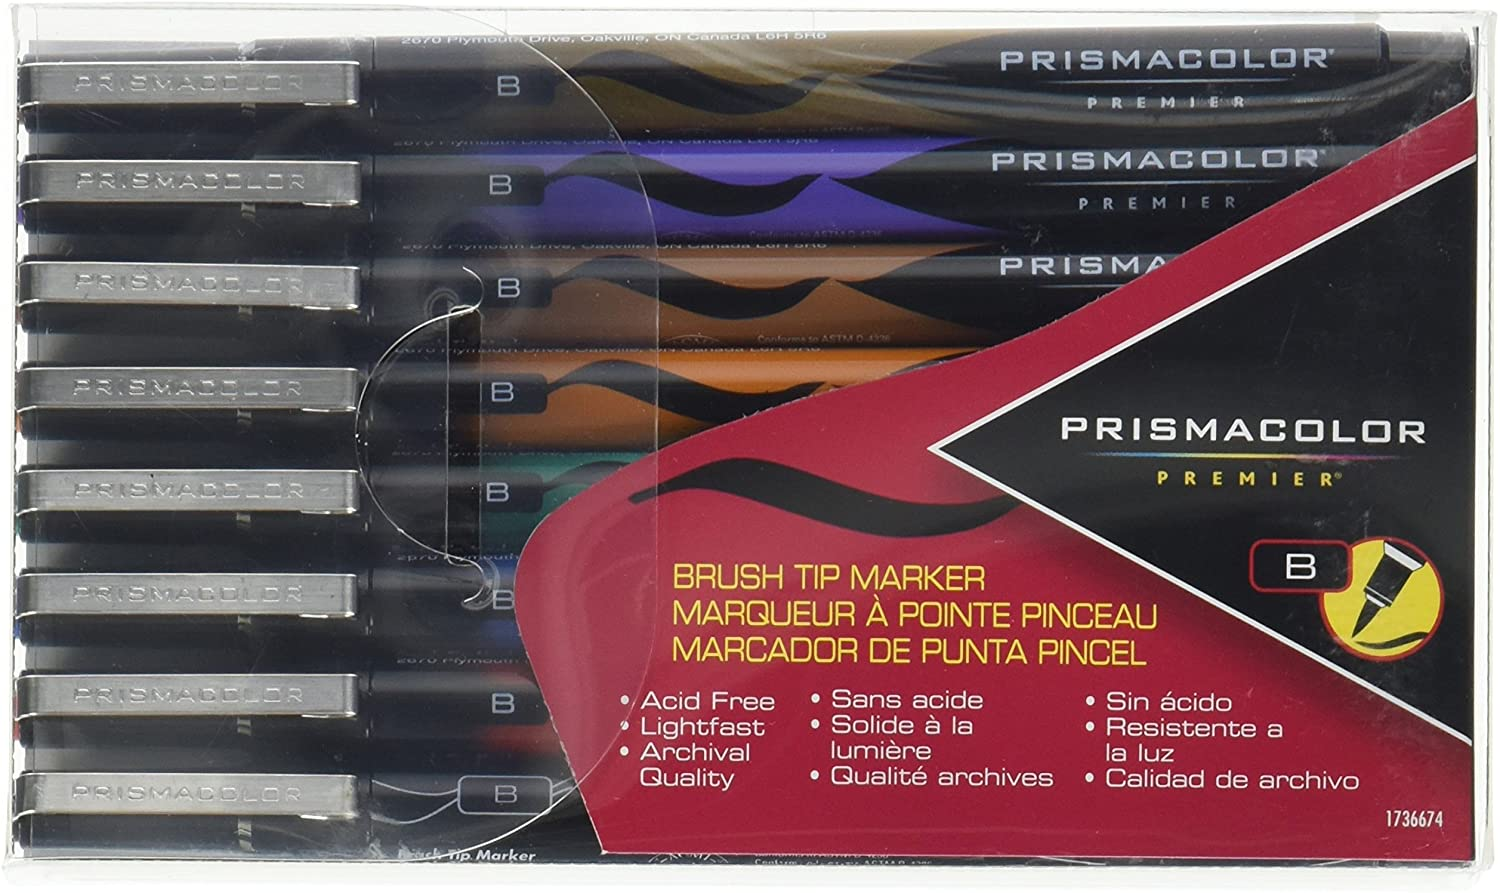 Prismacolor 1736674 Premier Illustration Brush Tip Art Markers, Assorted Colors, 8-Count